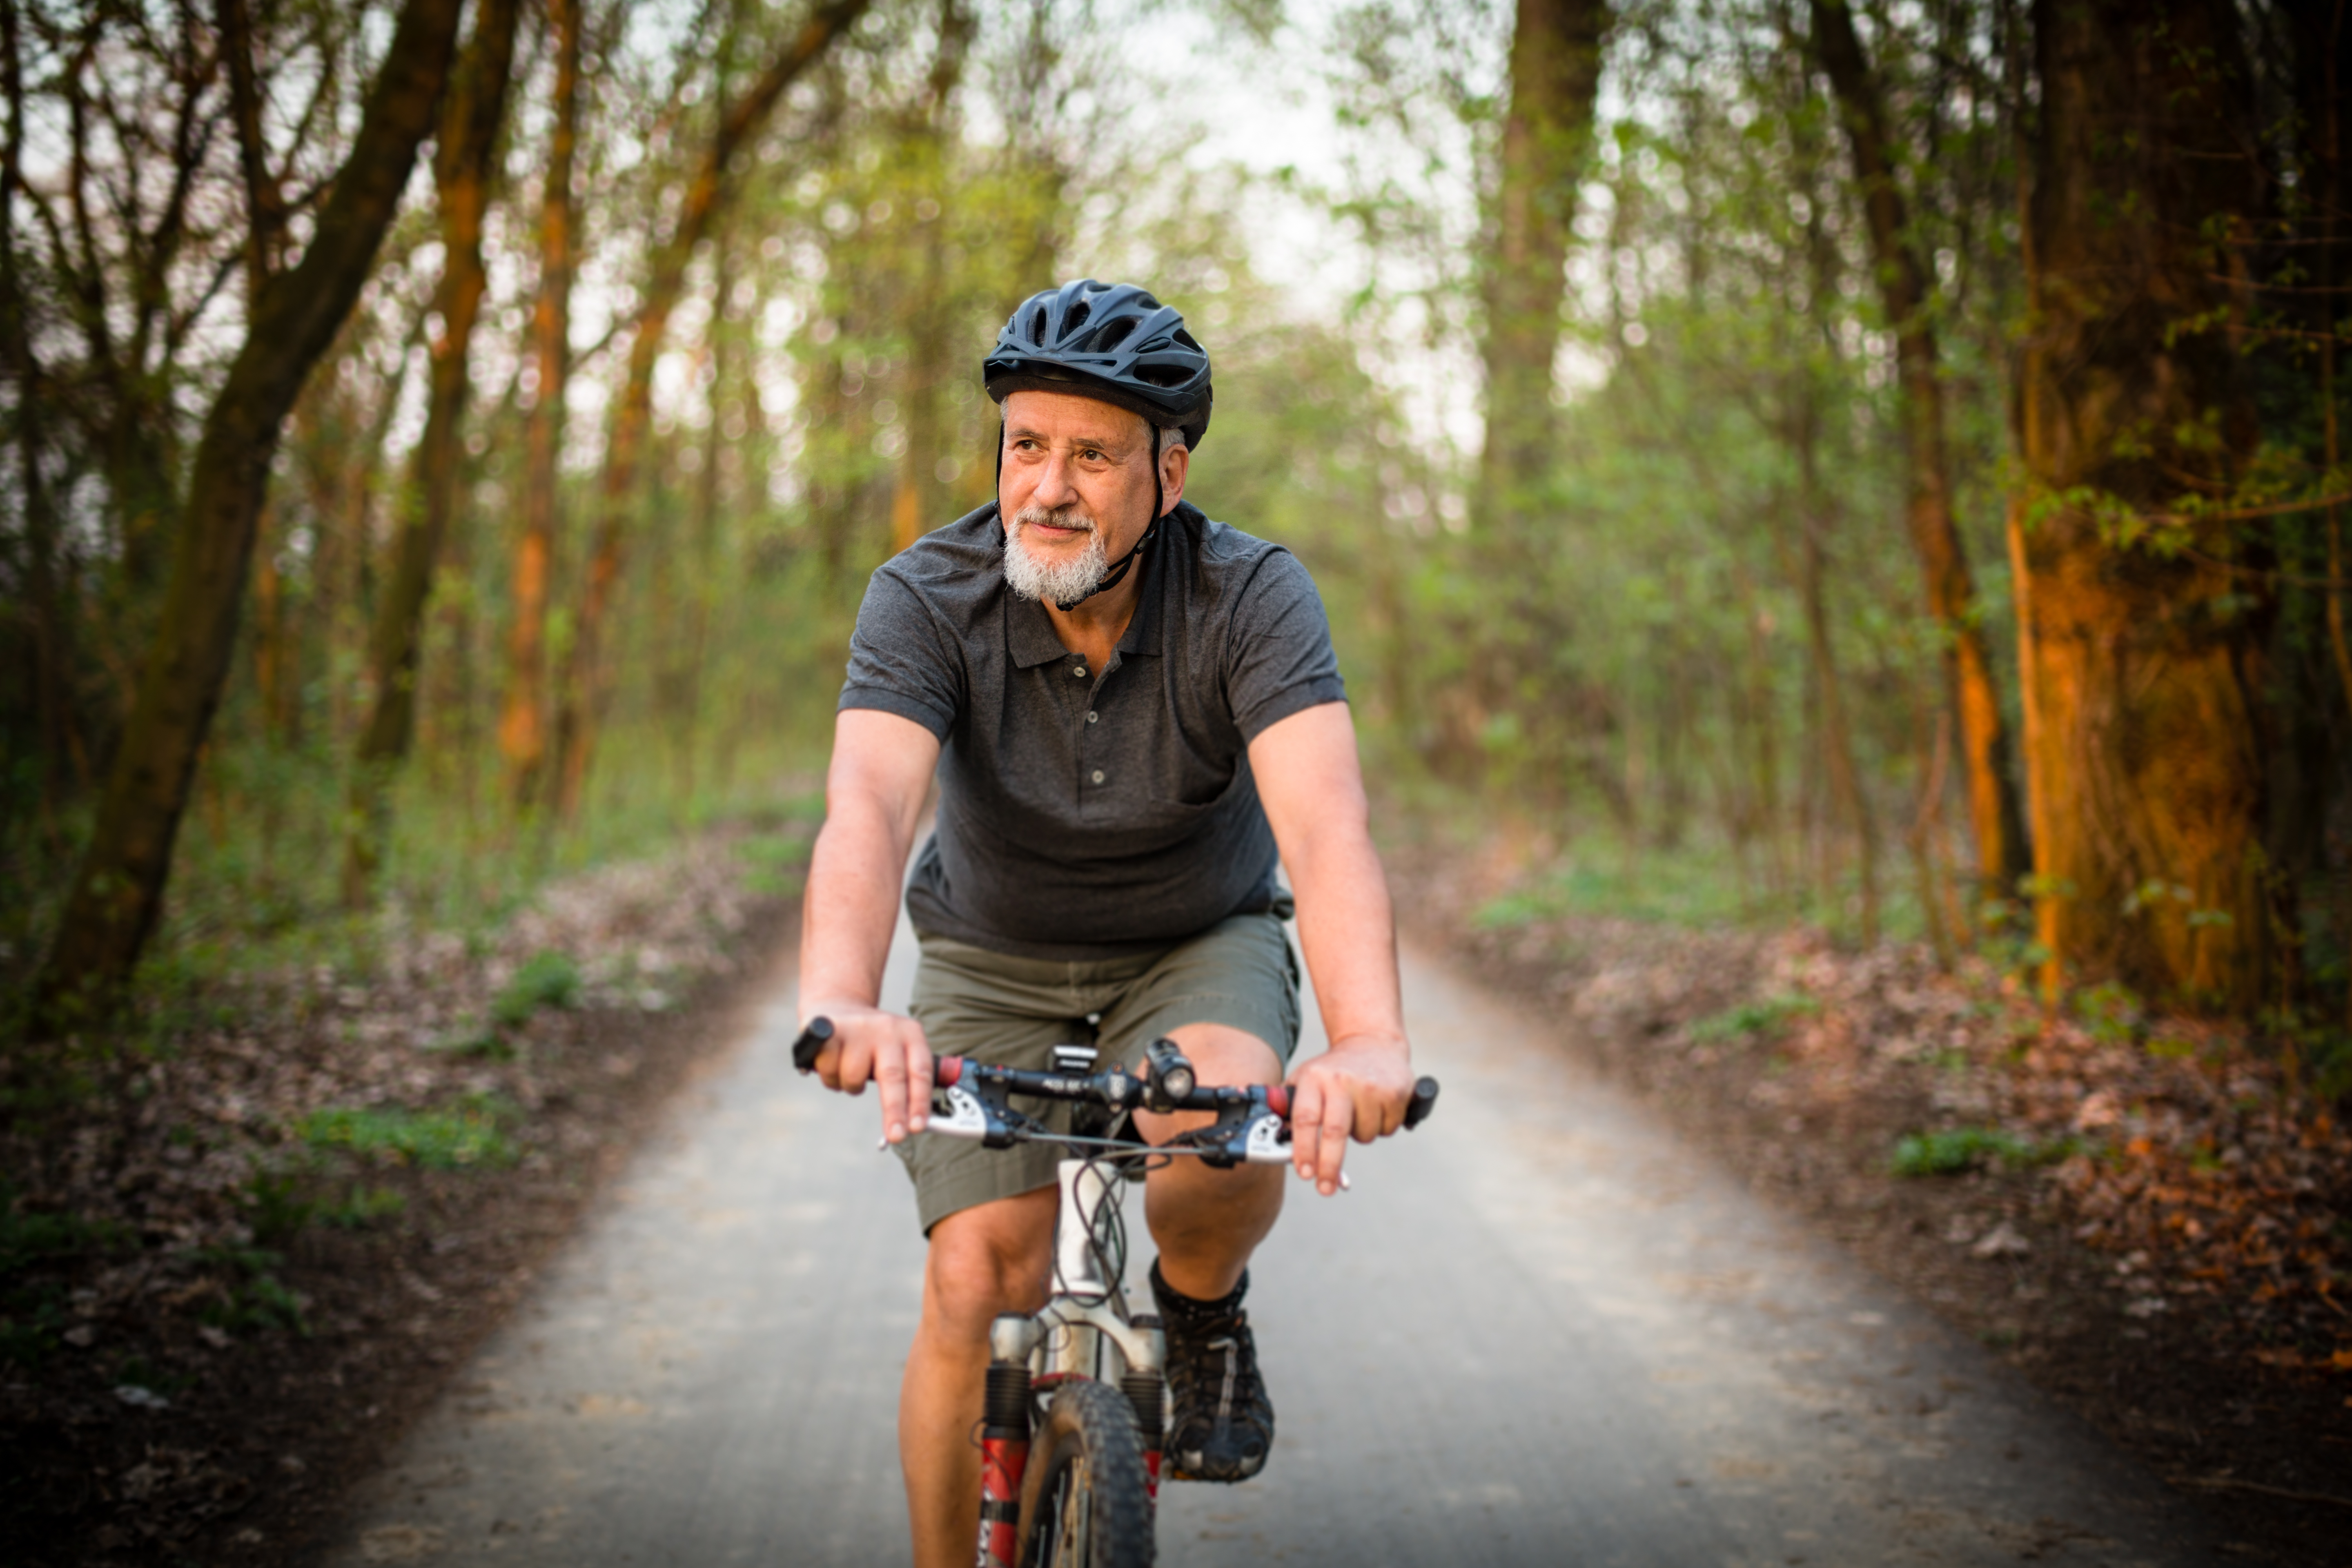 Cycling after partial knee replacement